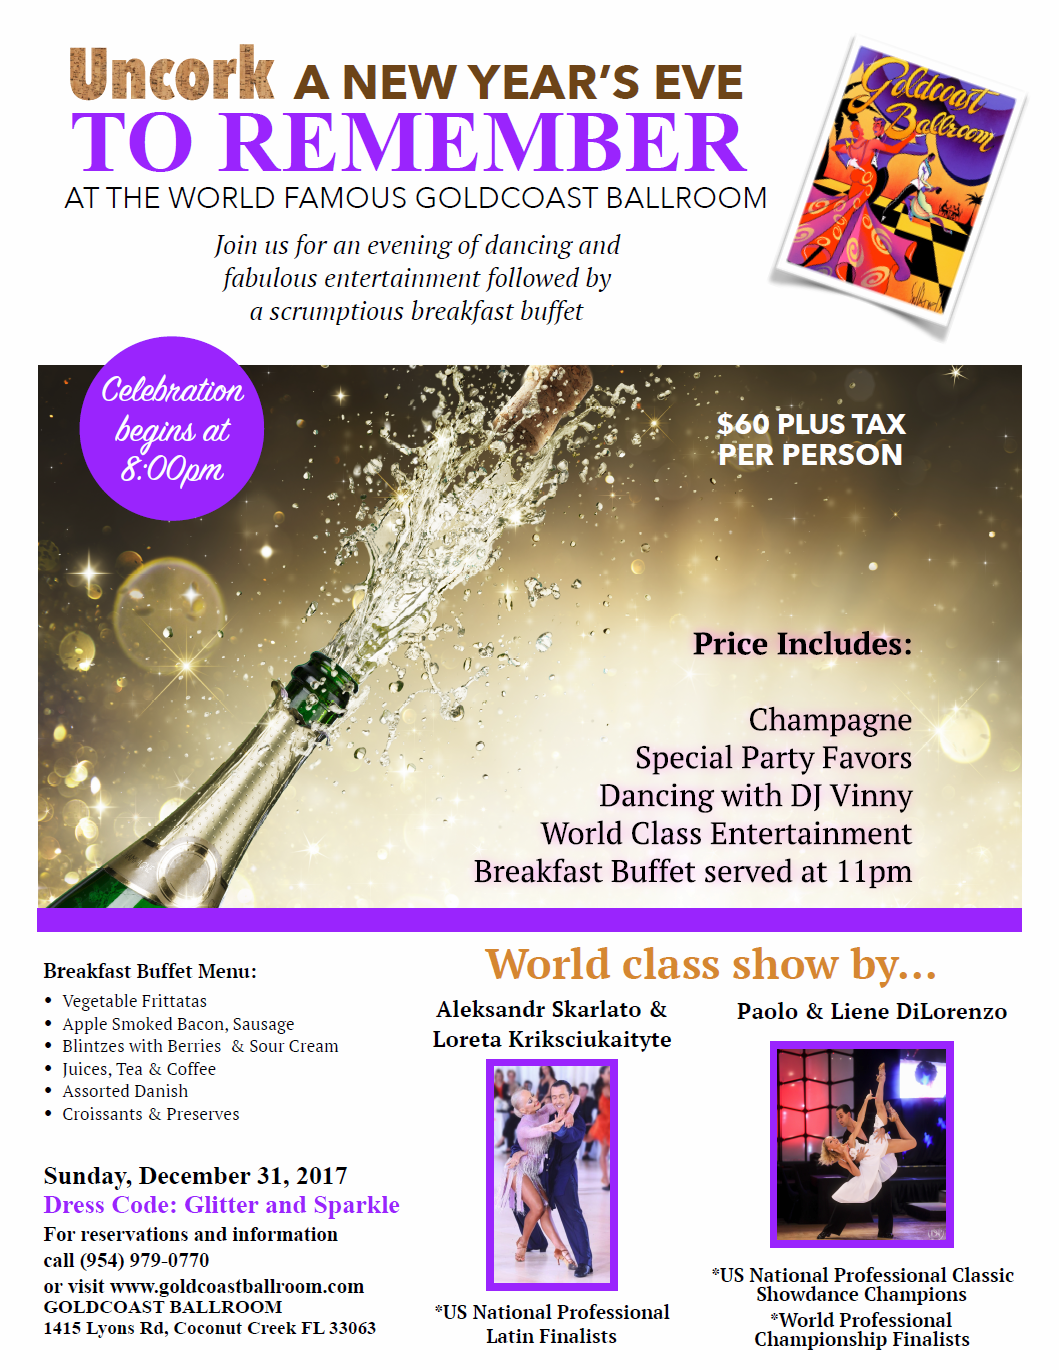 Click to Print Flyer: Spectacular New Year's Eve Gala - December 31, 2017! - at Goldcoast Ballroom!